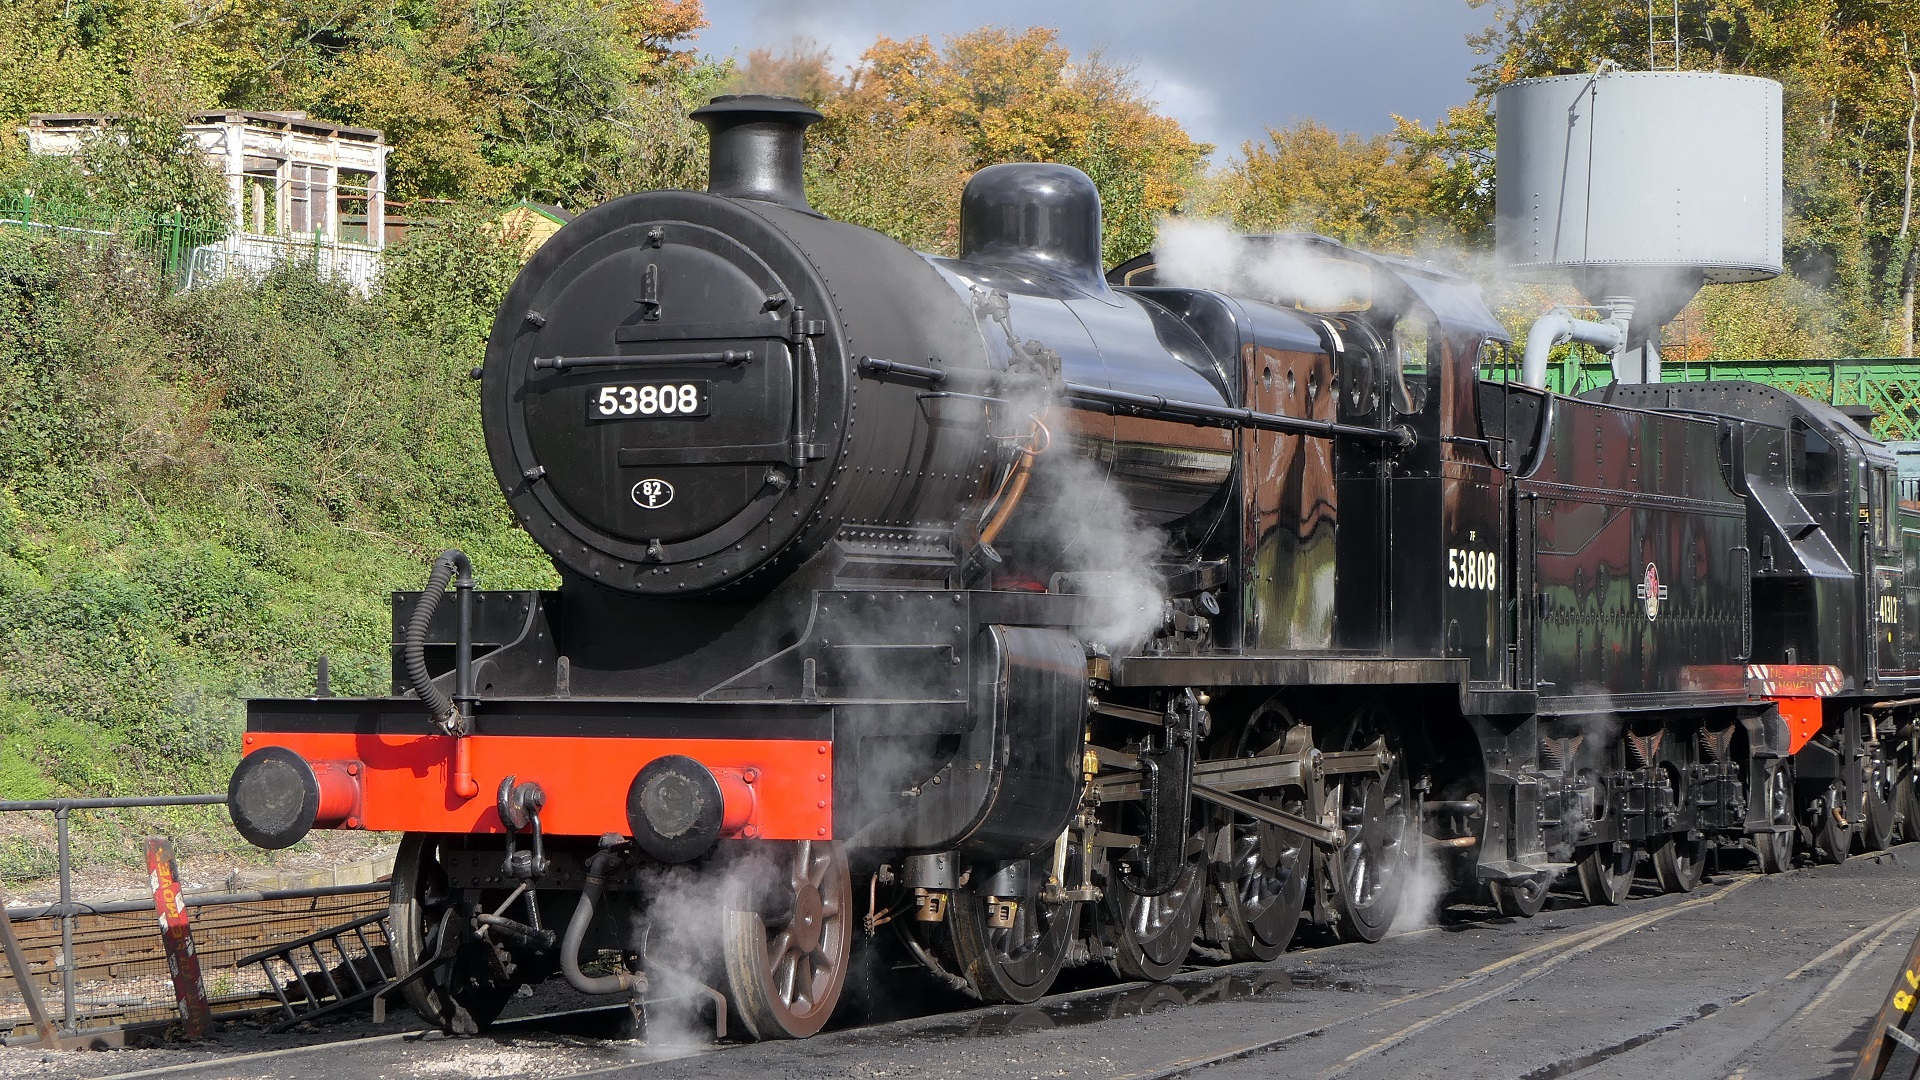 53808 at Ropley on 13 October